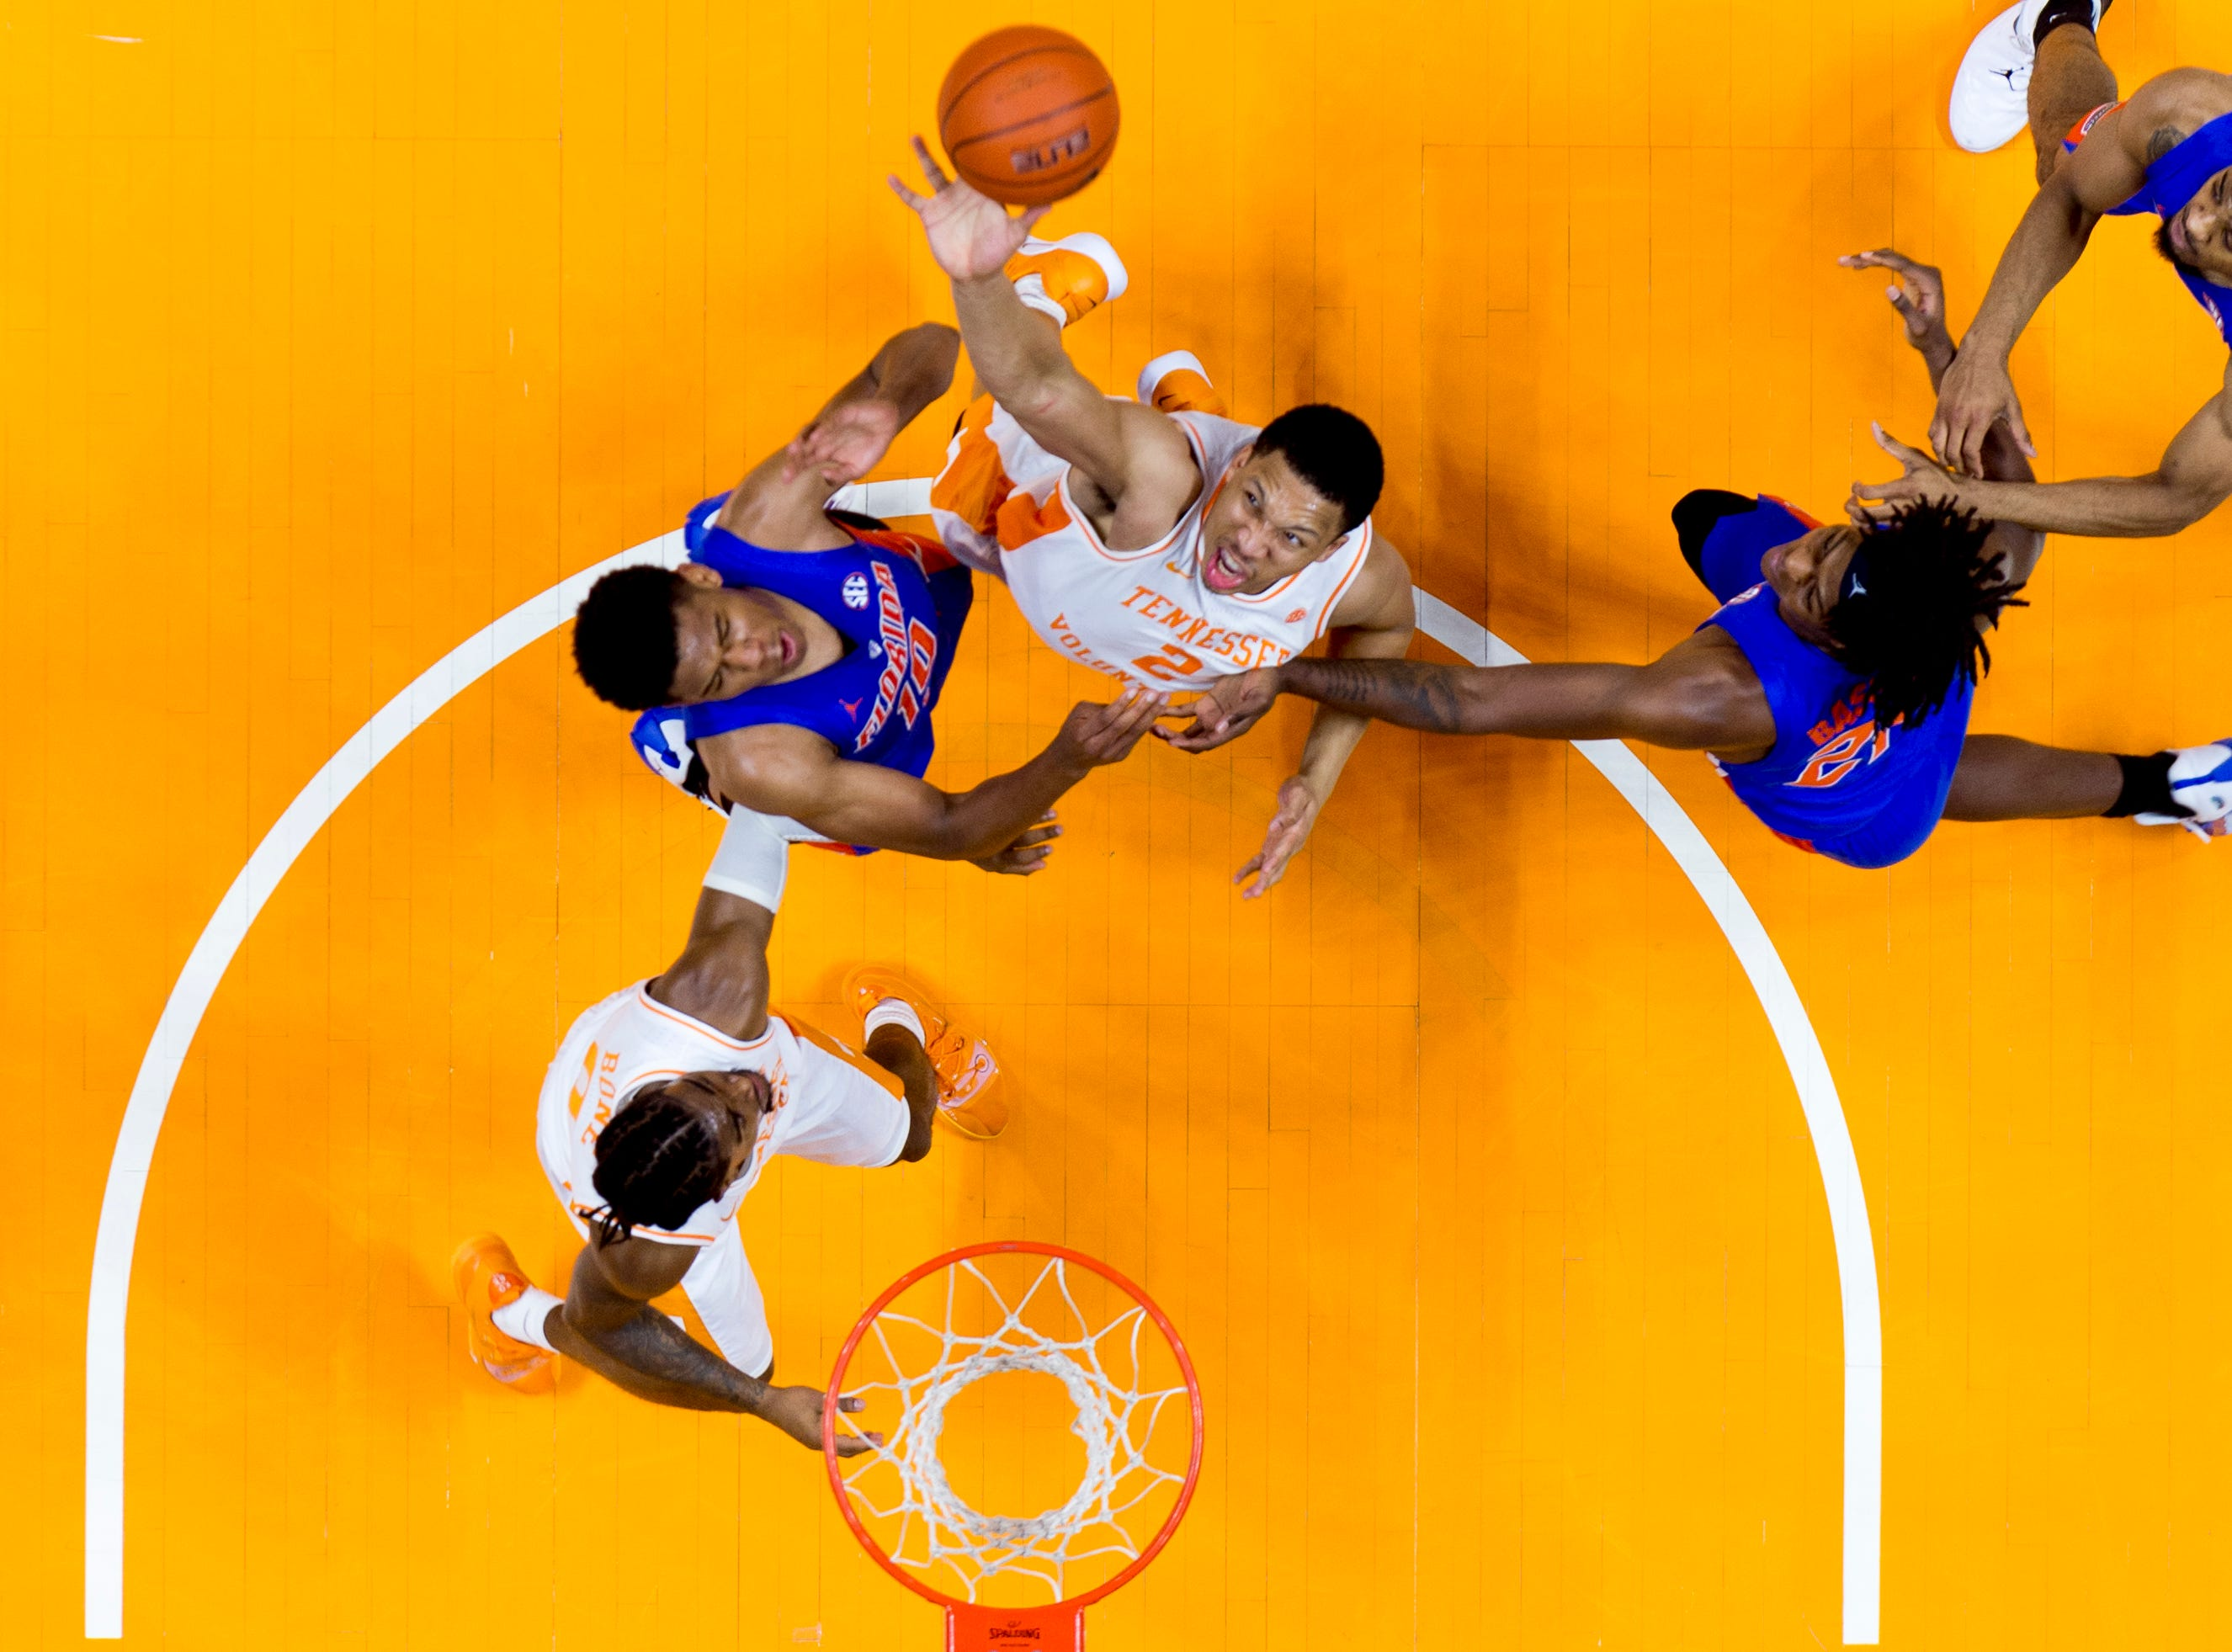 Tennessee forward Grant Williams (2) tries to grab the rebound past Florida guard Noah Locke (10) and Florida forward Dontay Bassett (21) during a game between Tennessee and Florida at Thompson-Boling Arena in Knoxville, Tennessee on Saturday, February 9, 2019.